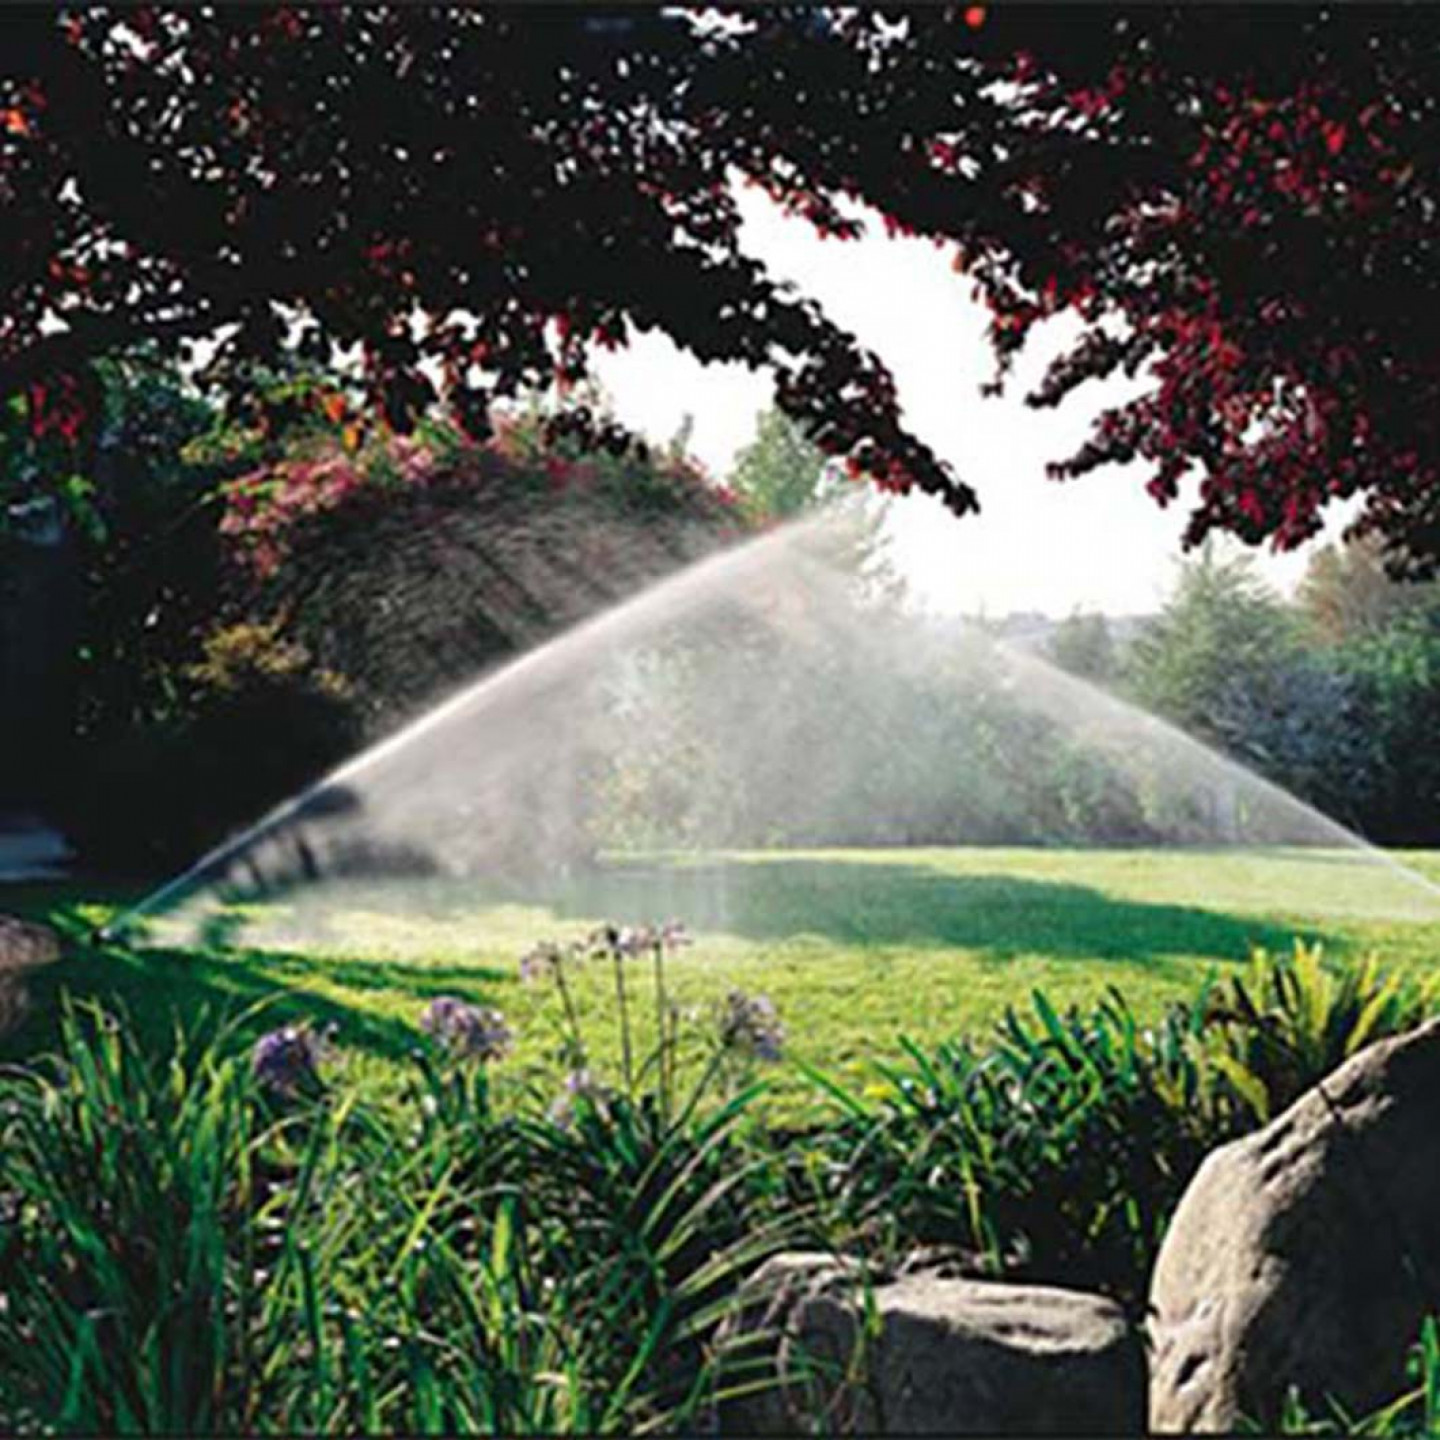 The Main Benefits Of Installing An Irrigation System: